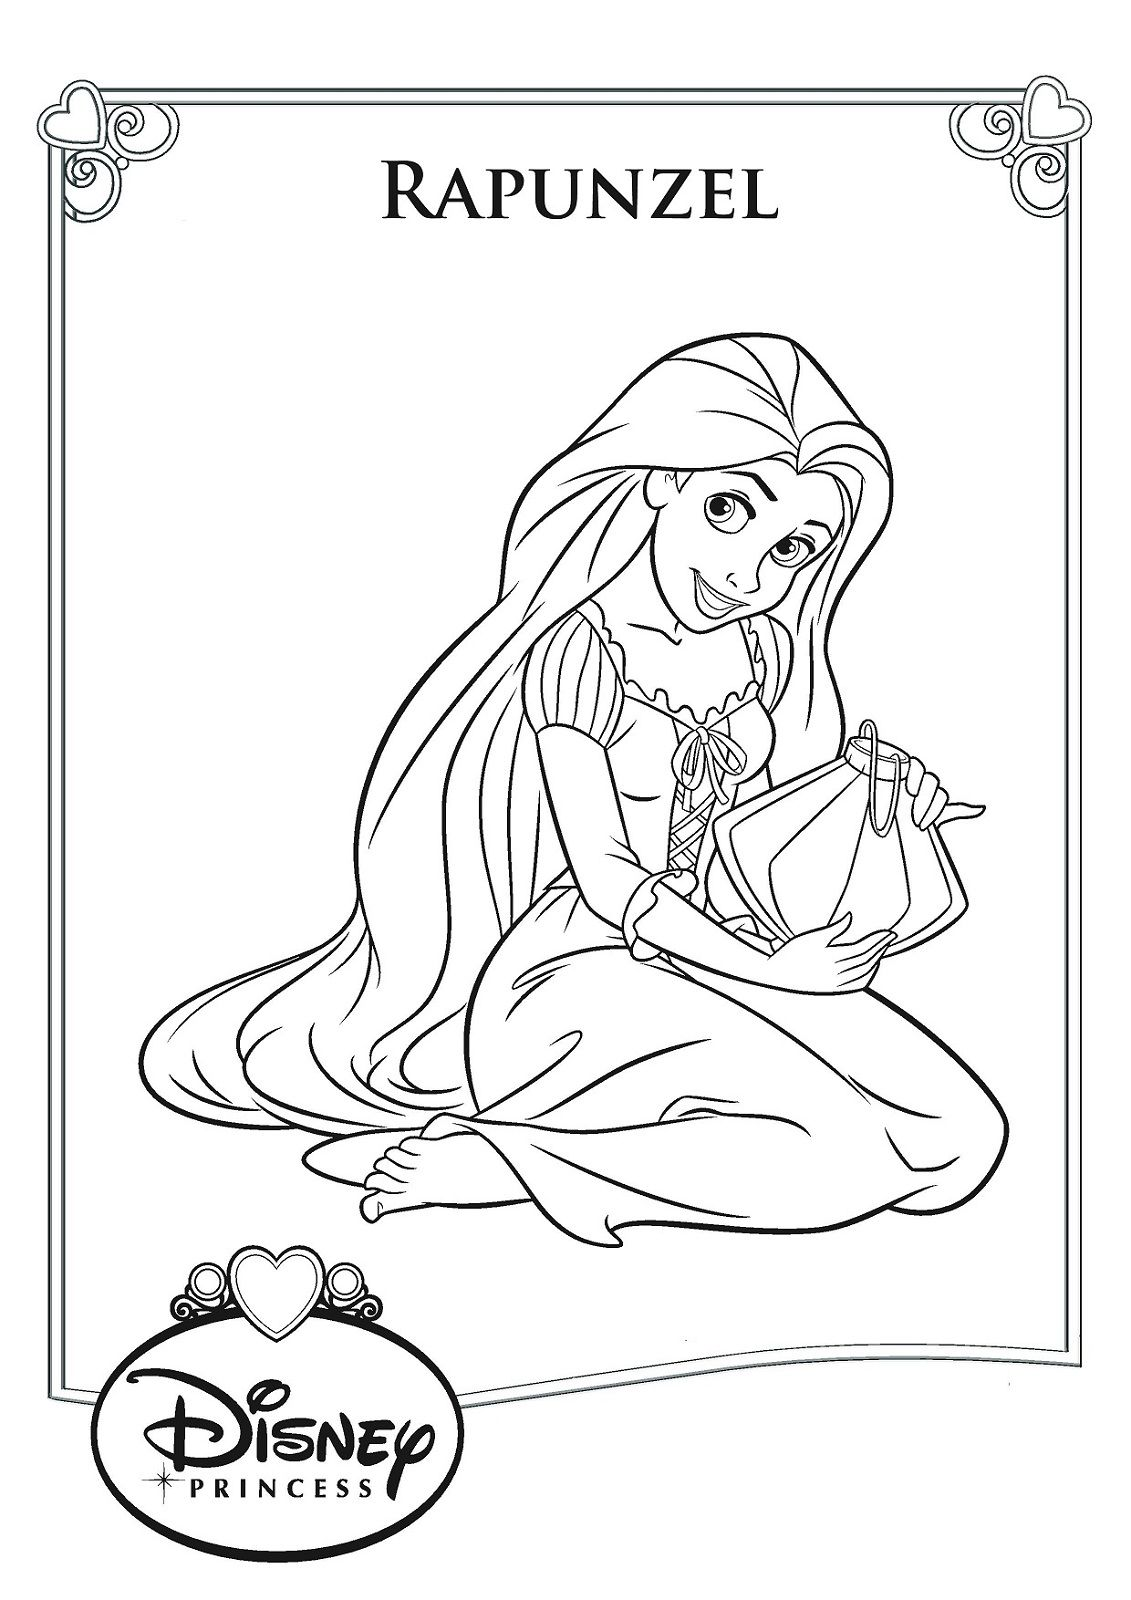 Rapunzel Color Pages to Print Coloring pages for girls